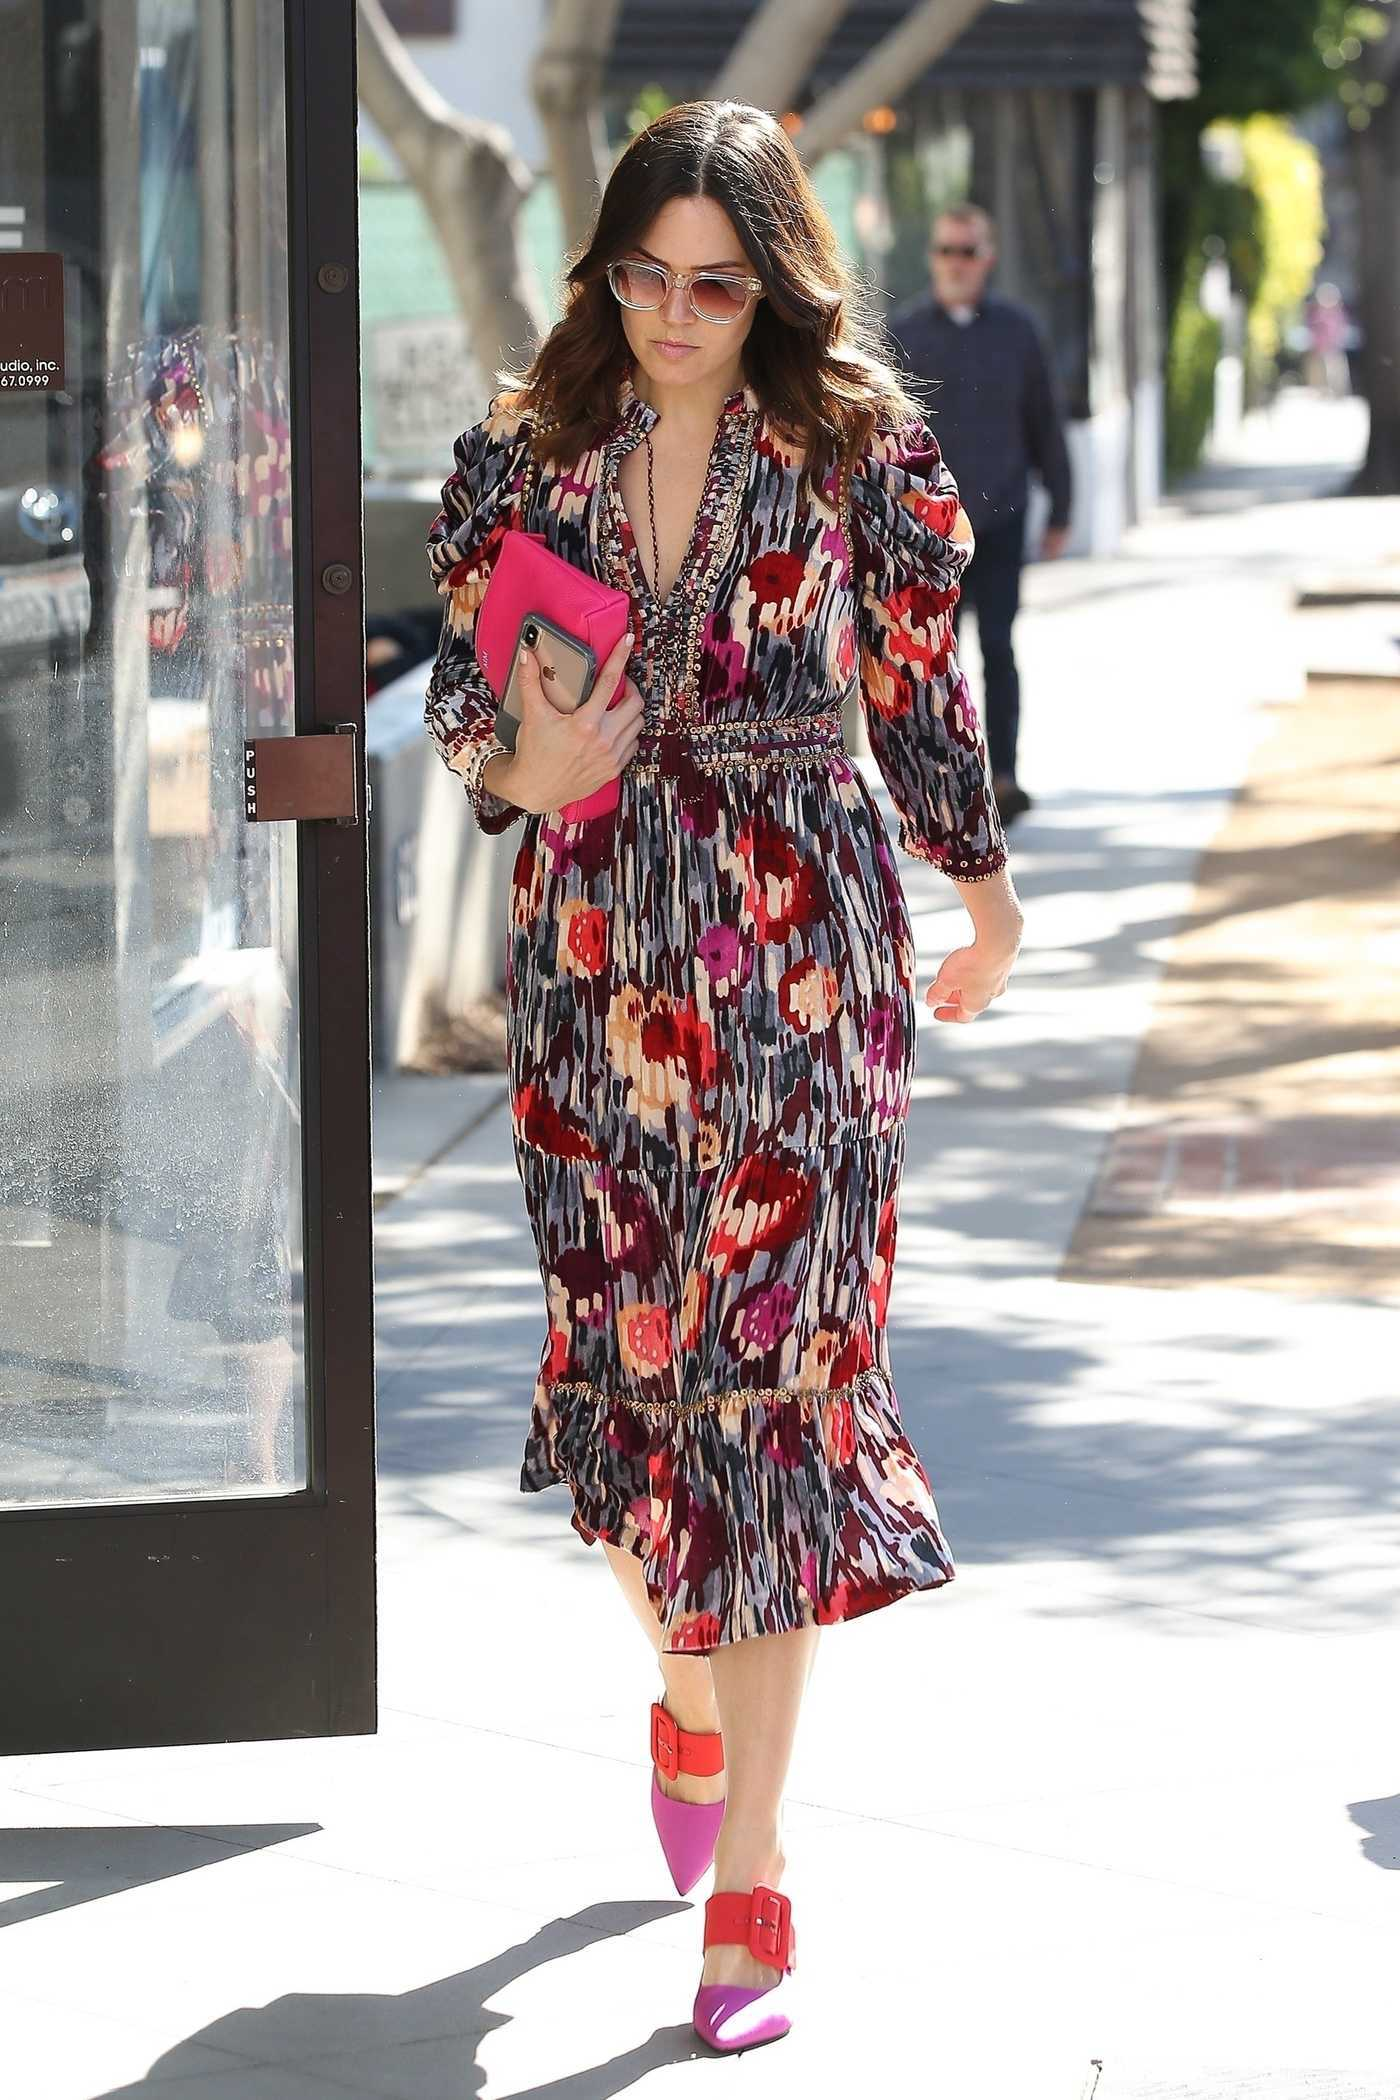 Mandy Moore in a Colorful Dress Was Seen Out in Beverly Hills 11/14/2018